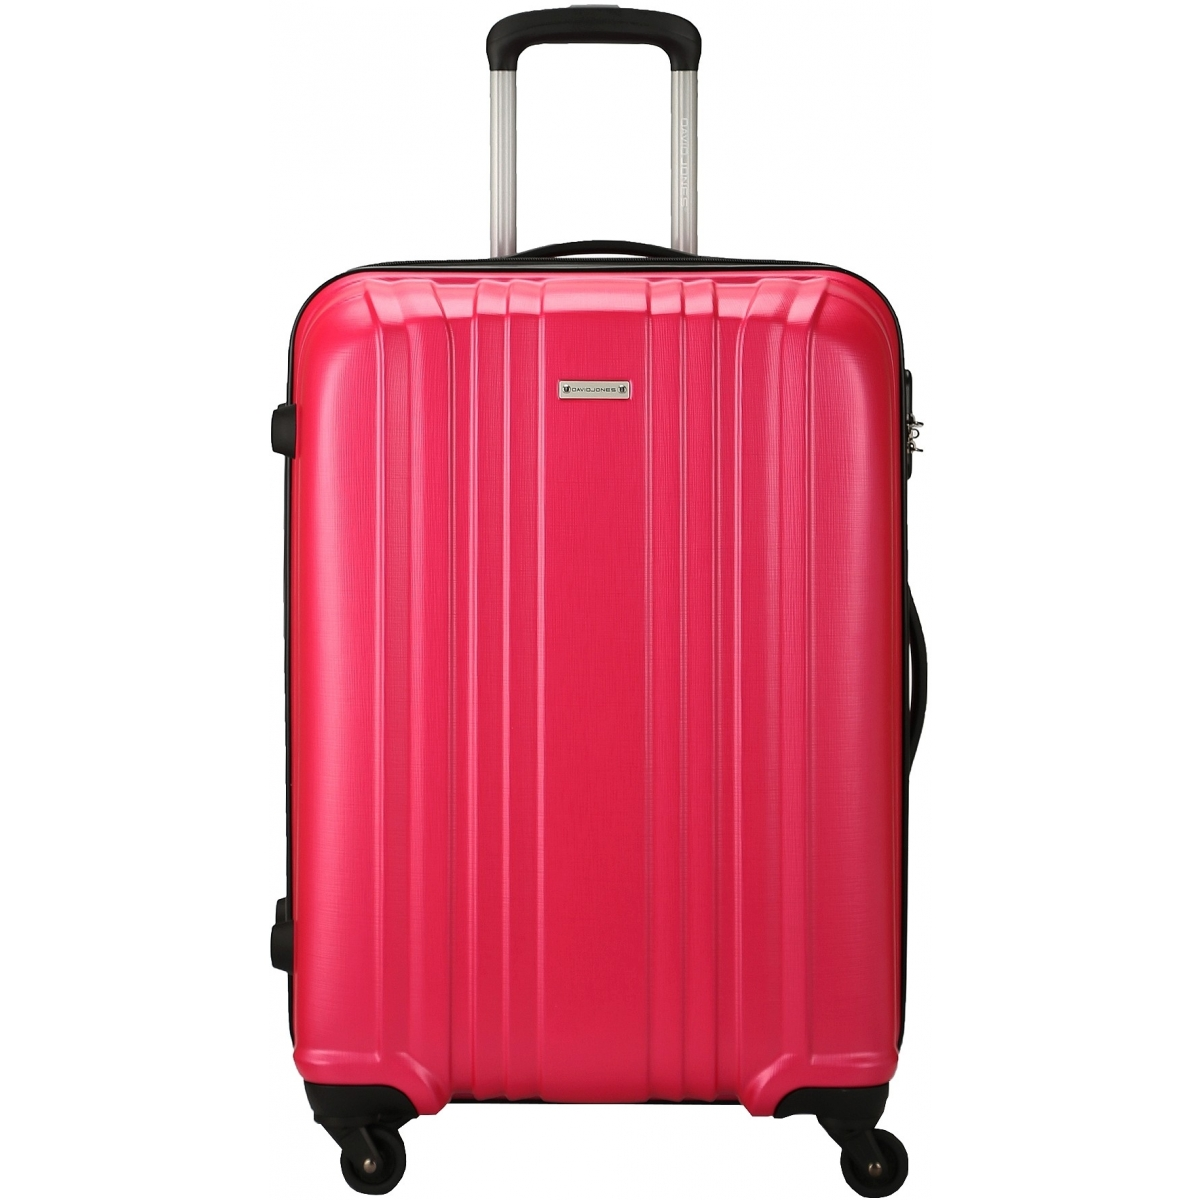 valise rigide david jones taille m 66cm ba10171m couleur principale fushia promotion. Black Bedroom Furniture Sets. Home Design Ideas